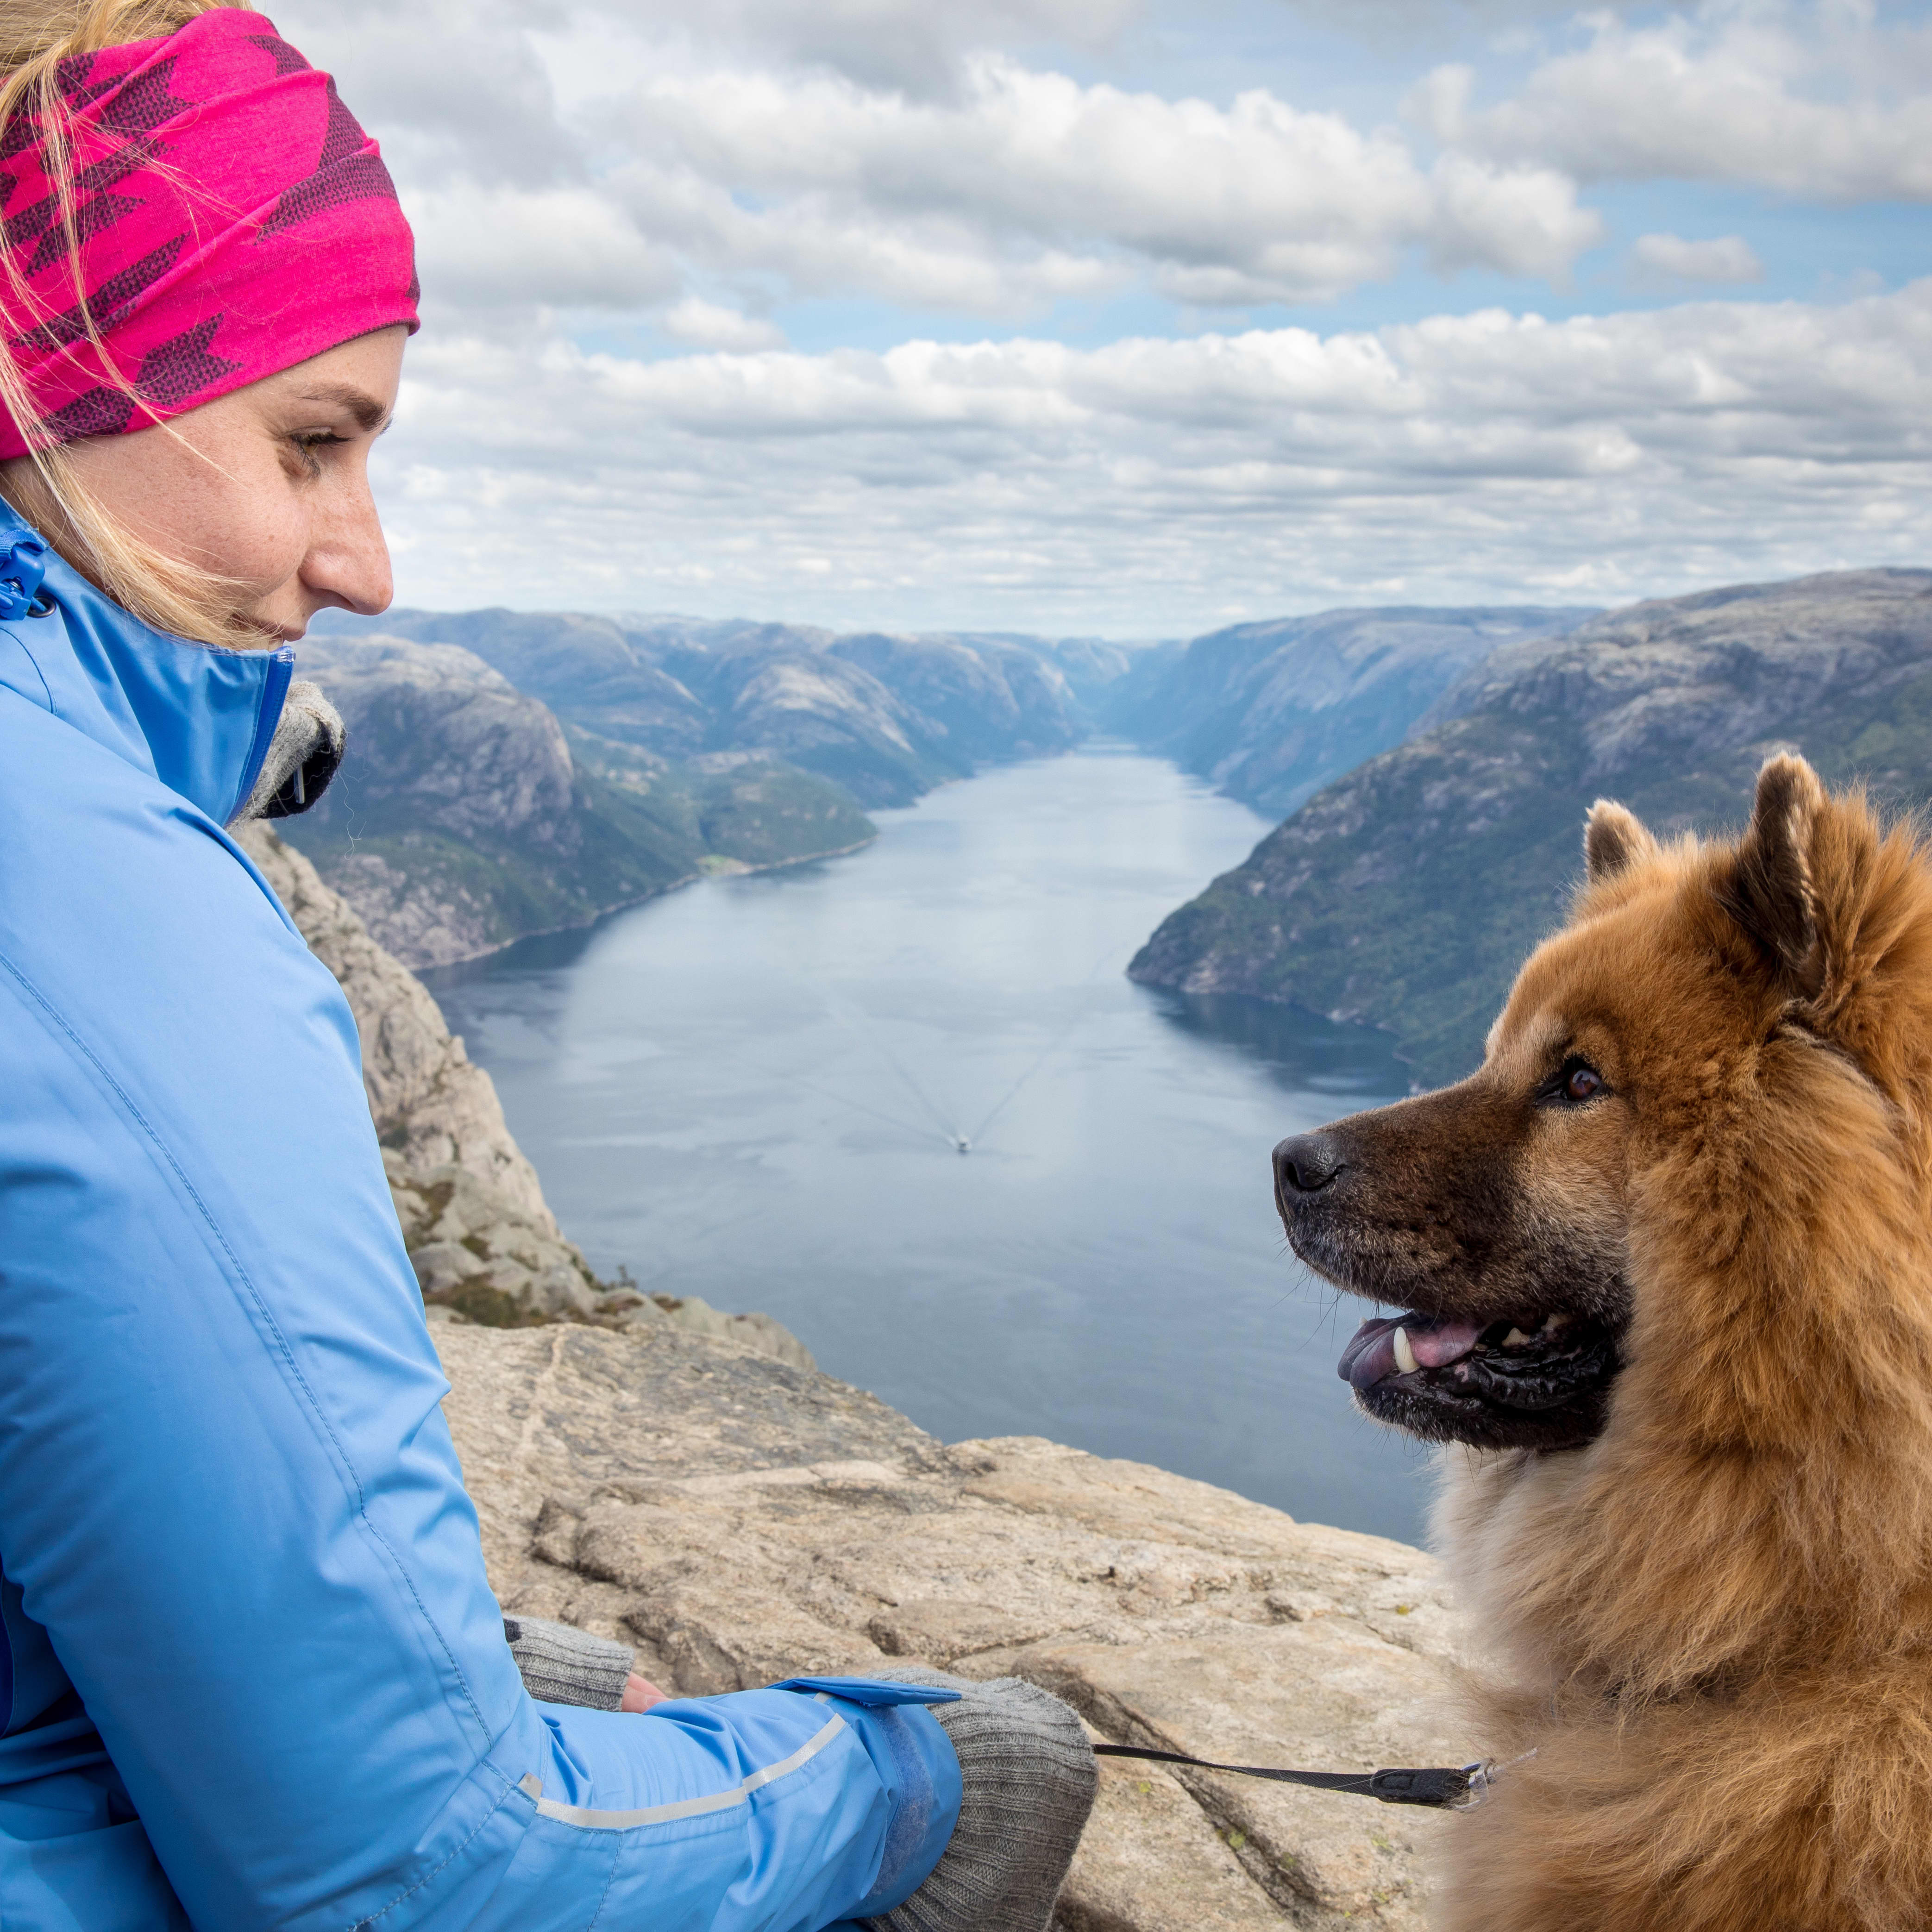 A girl with blond hair, pink head band and a blue hiking jacket having eye contact with her golden colored dog at Preikestolen. Between the two you see the Lysefjord and the rock landscape that surrounds the area.